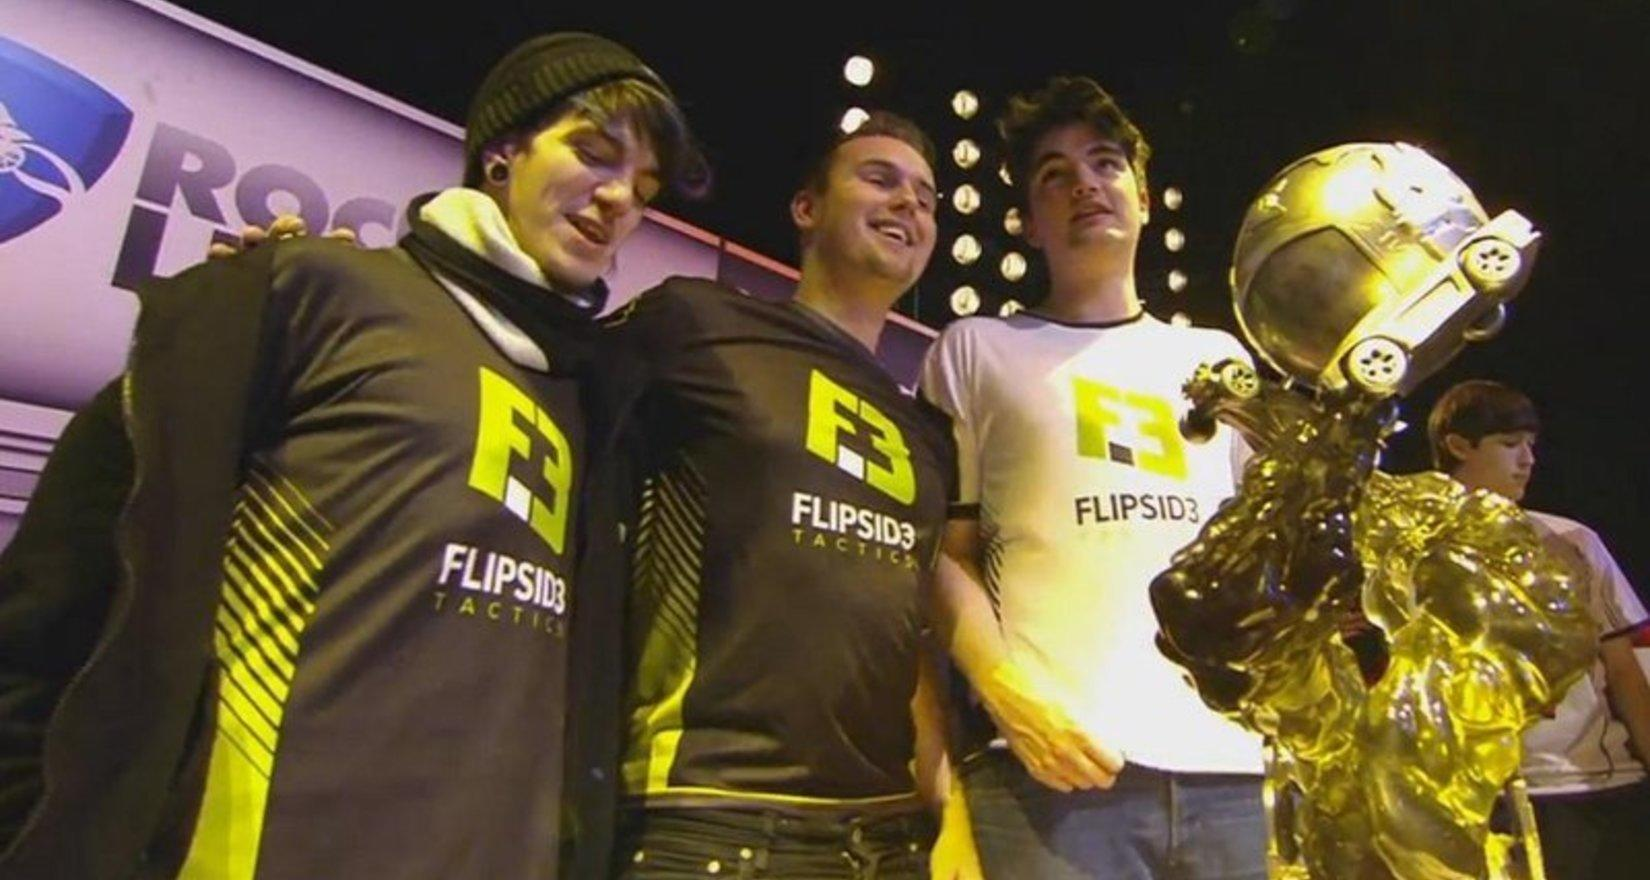 Flipsid3 Tactics Win RLCS Season 2 Image